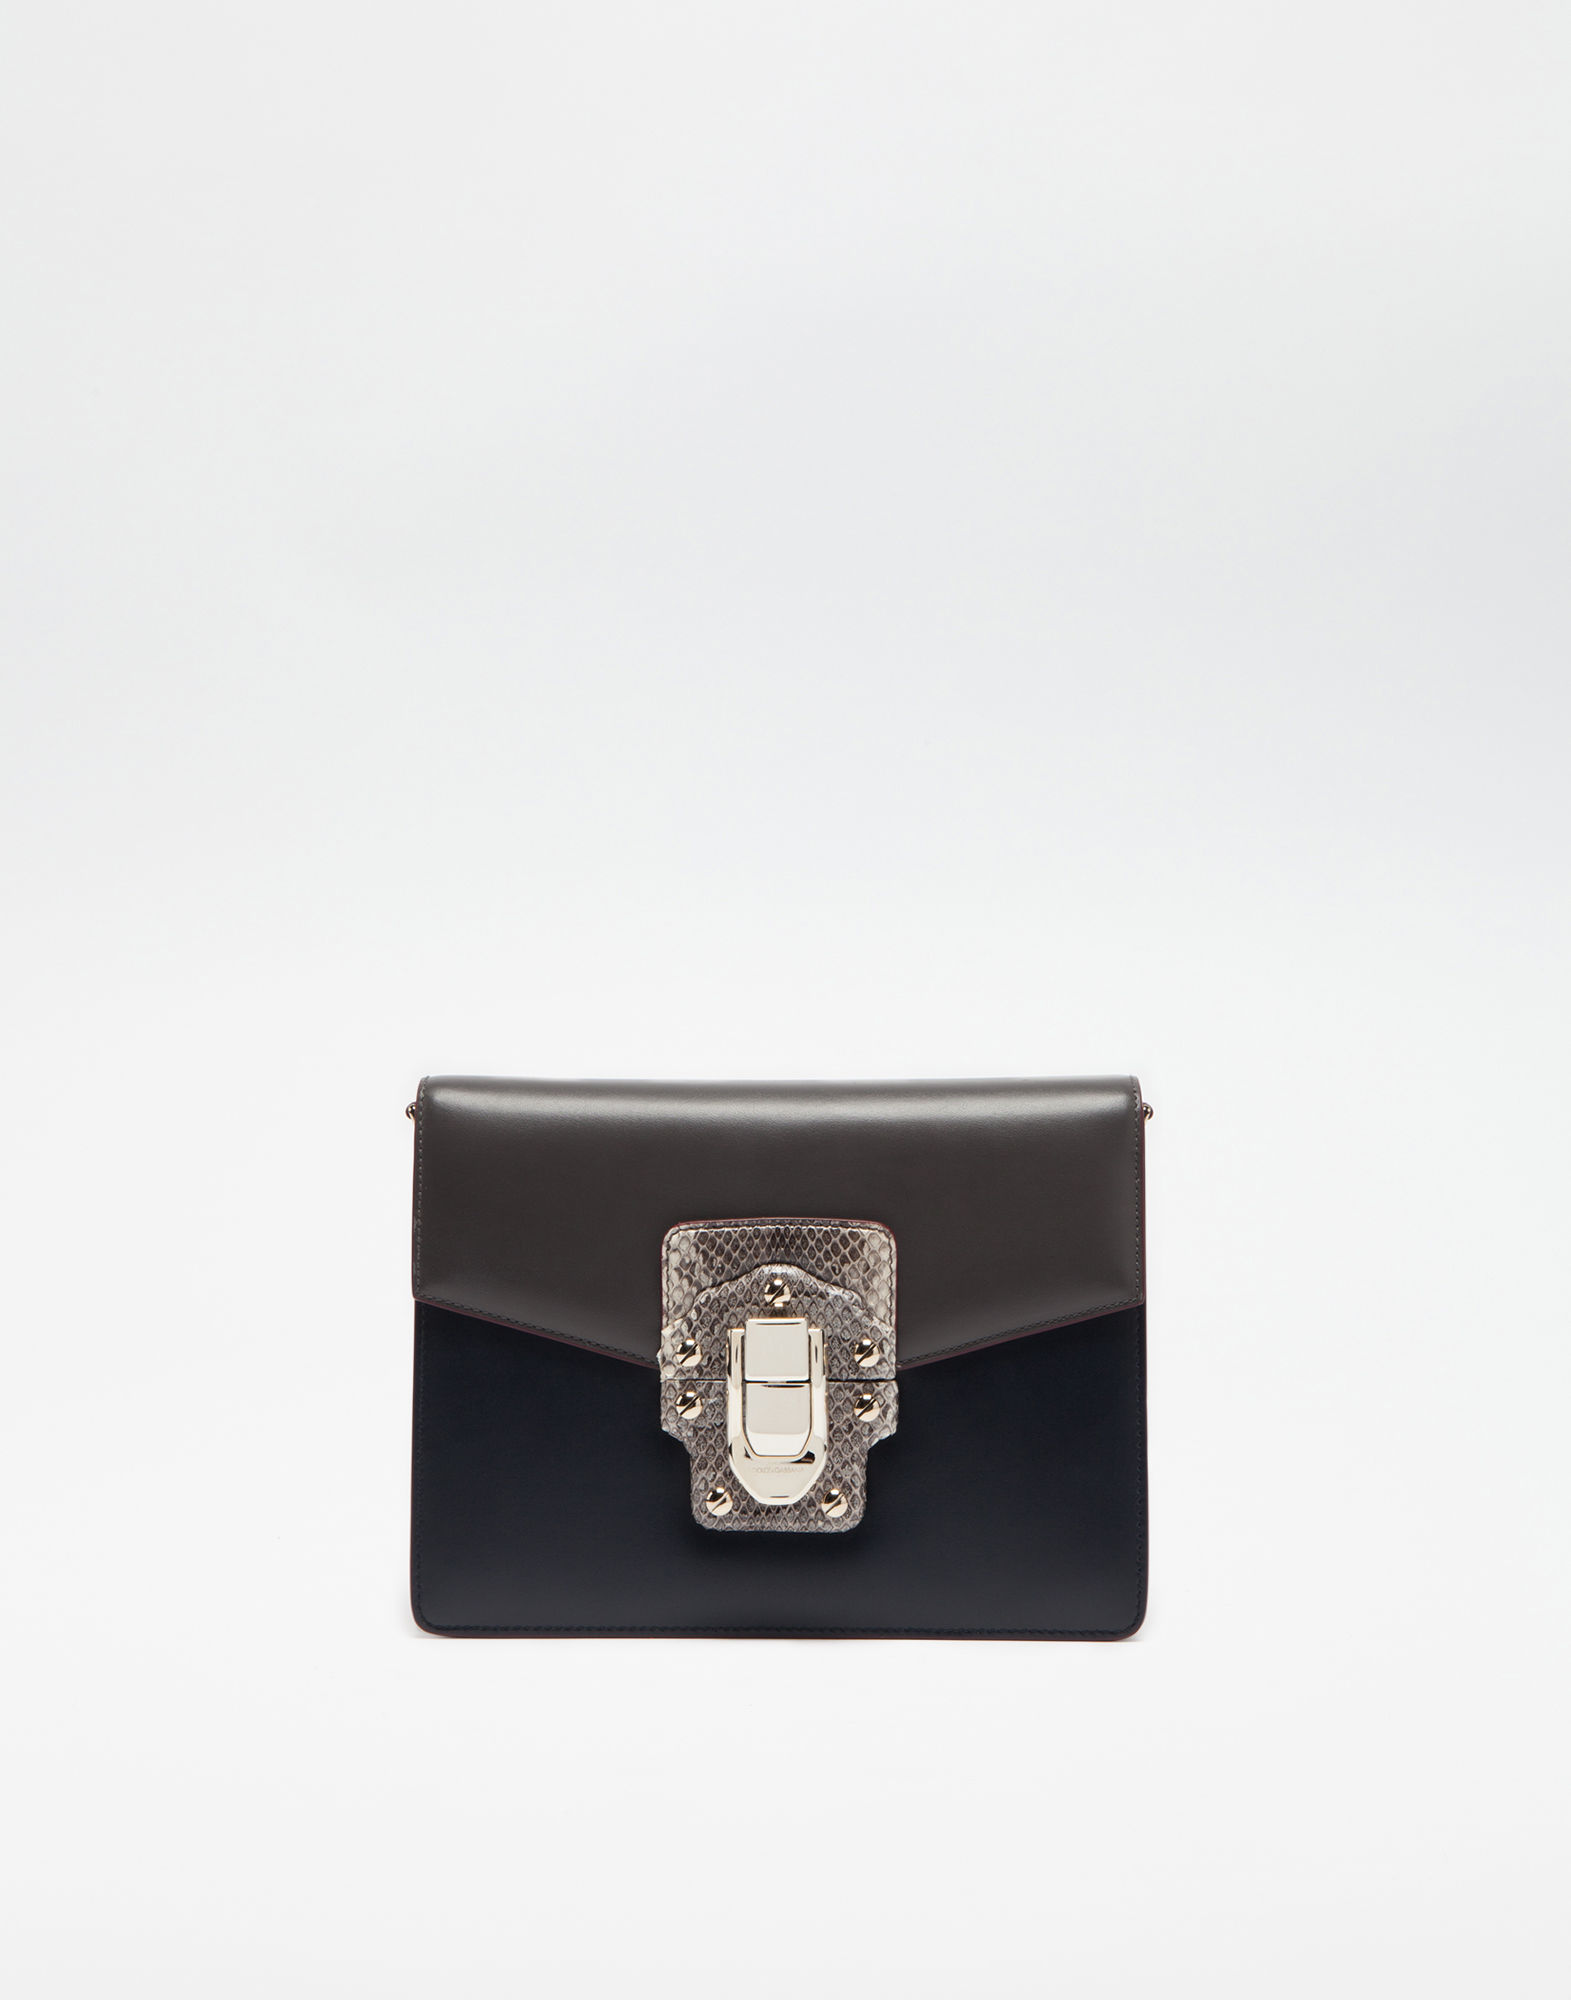 Dolce & Gabbana Lucia Shoulder Bag In Leather And Ayers In Gray/blue